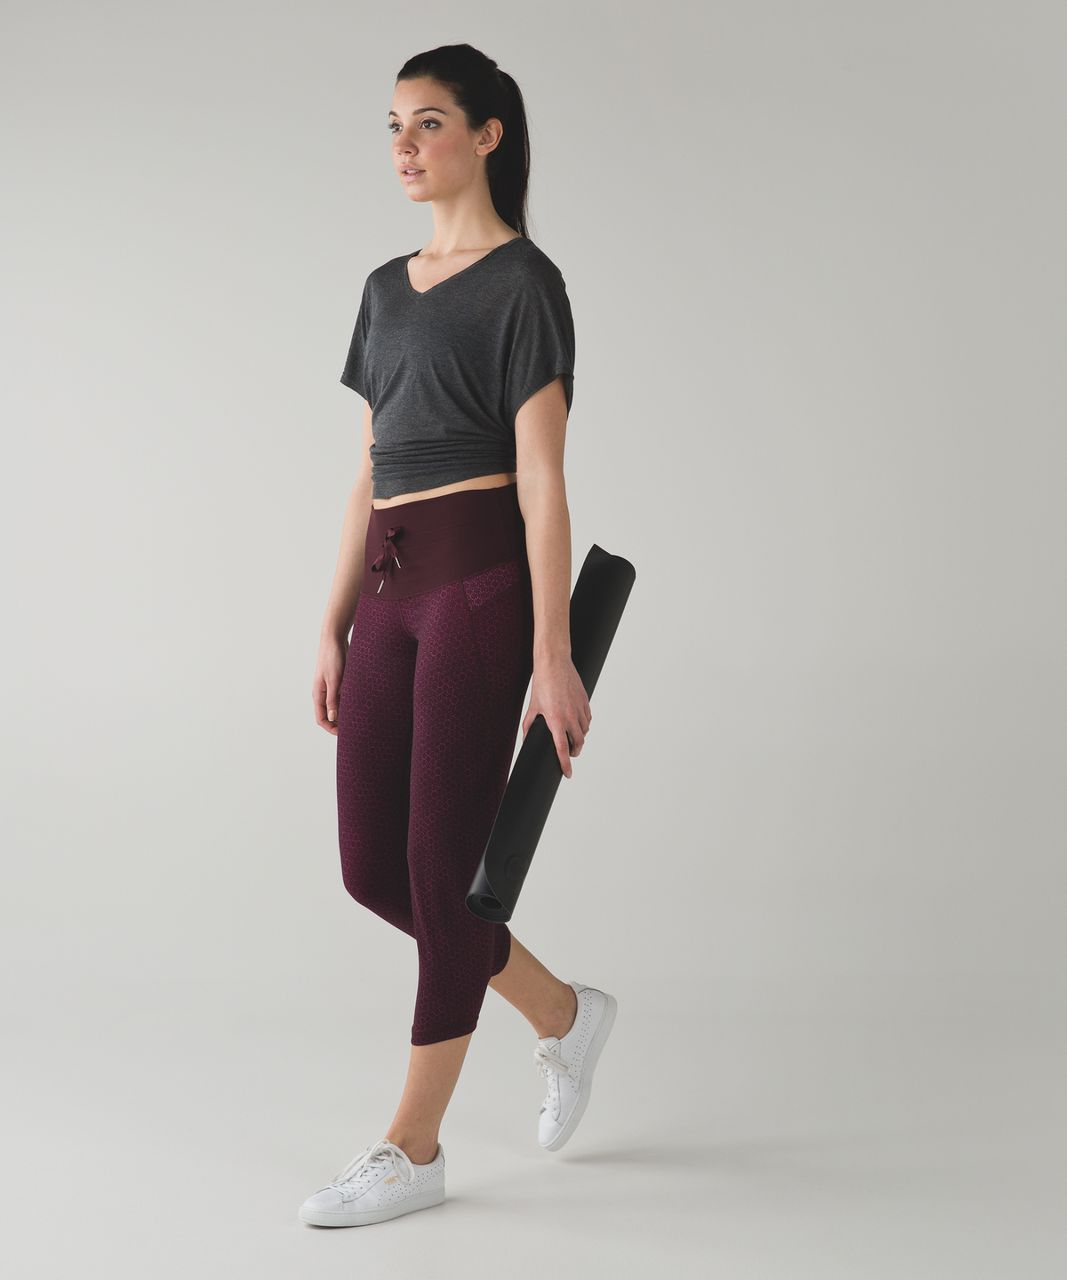 Lululemon Shake It Out Crop - Star Pixel Raspberry Bordeaux Drama / Bordeaux Drama